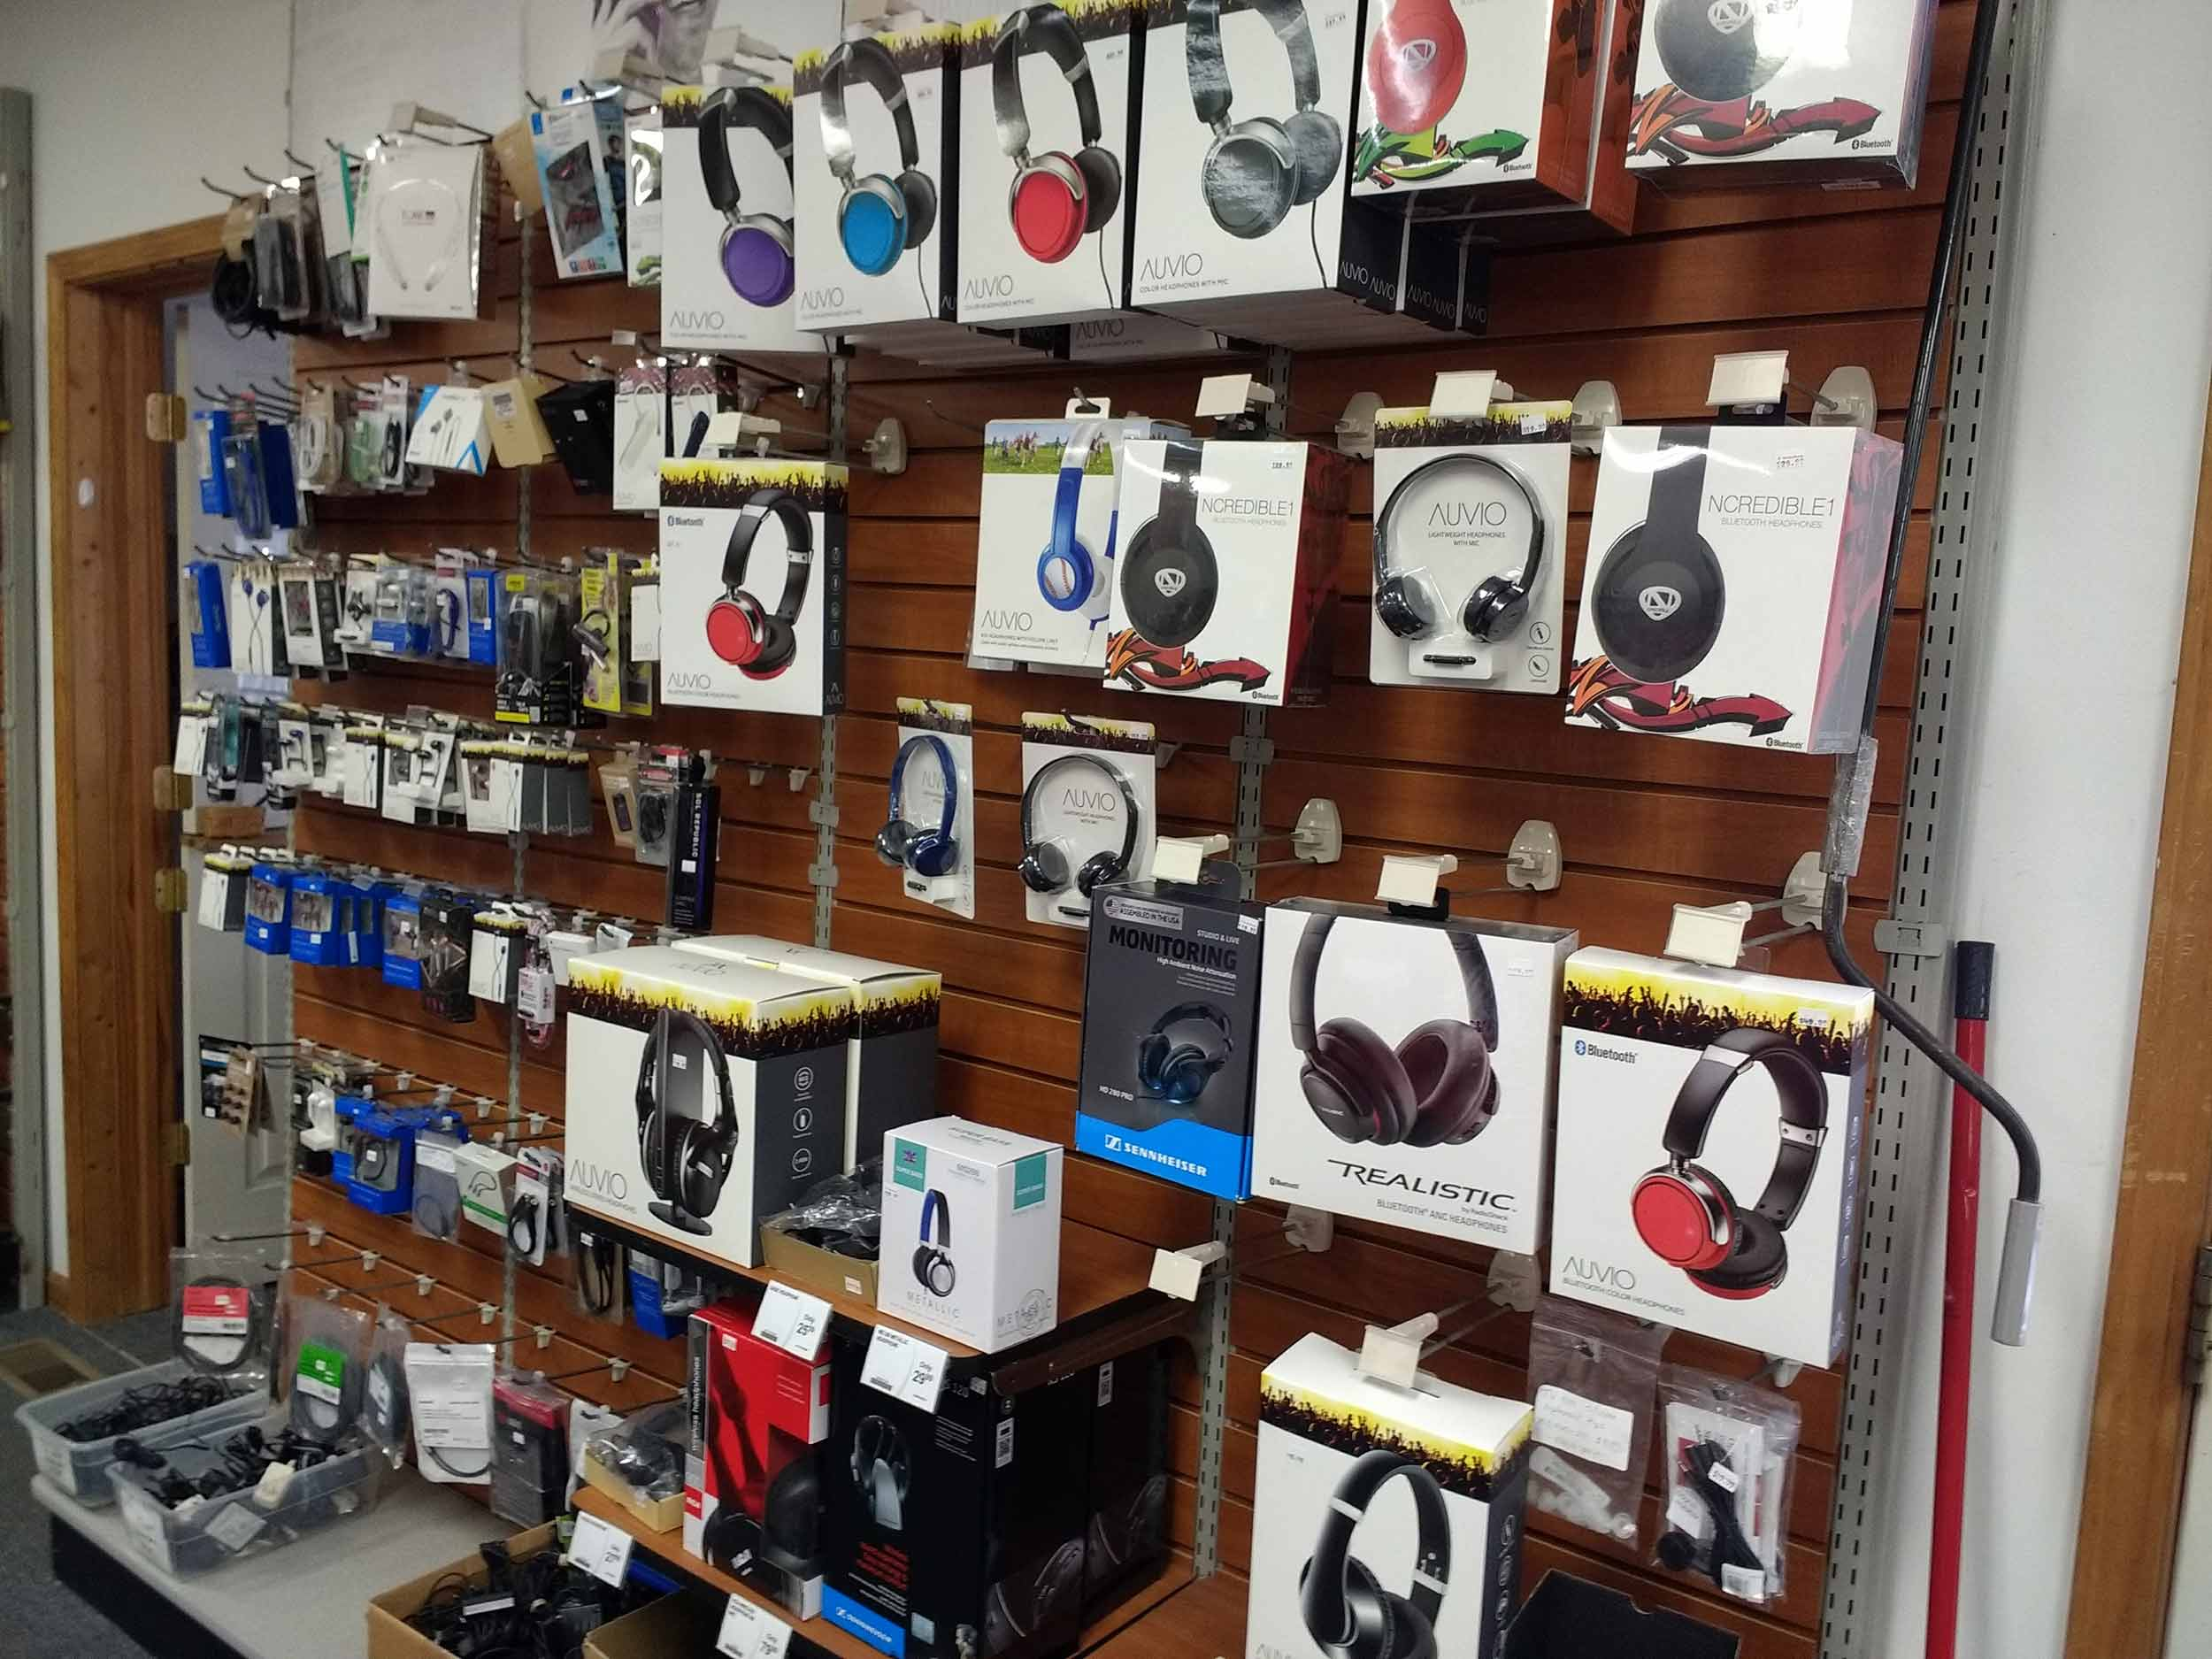 We have a complete selection of headphones and earbuds including Bluetooth and wired models.